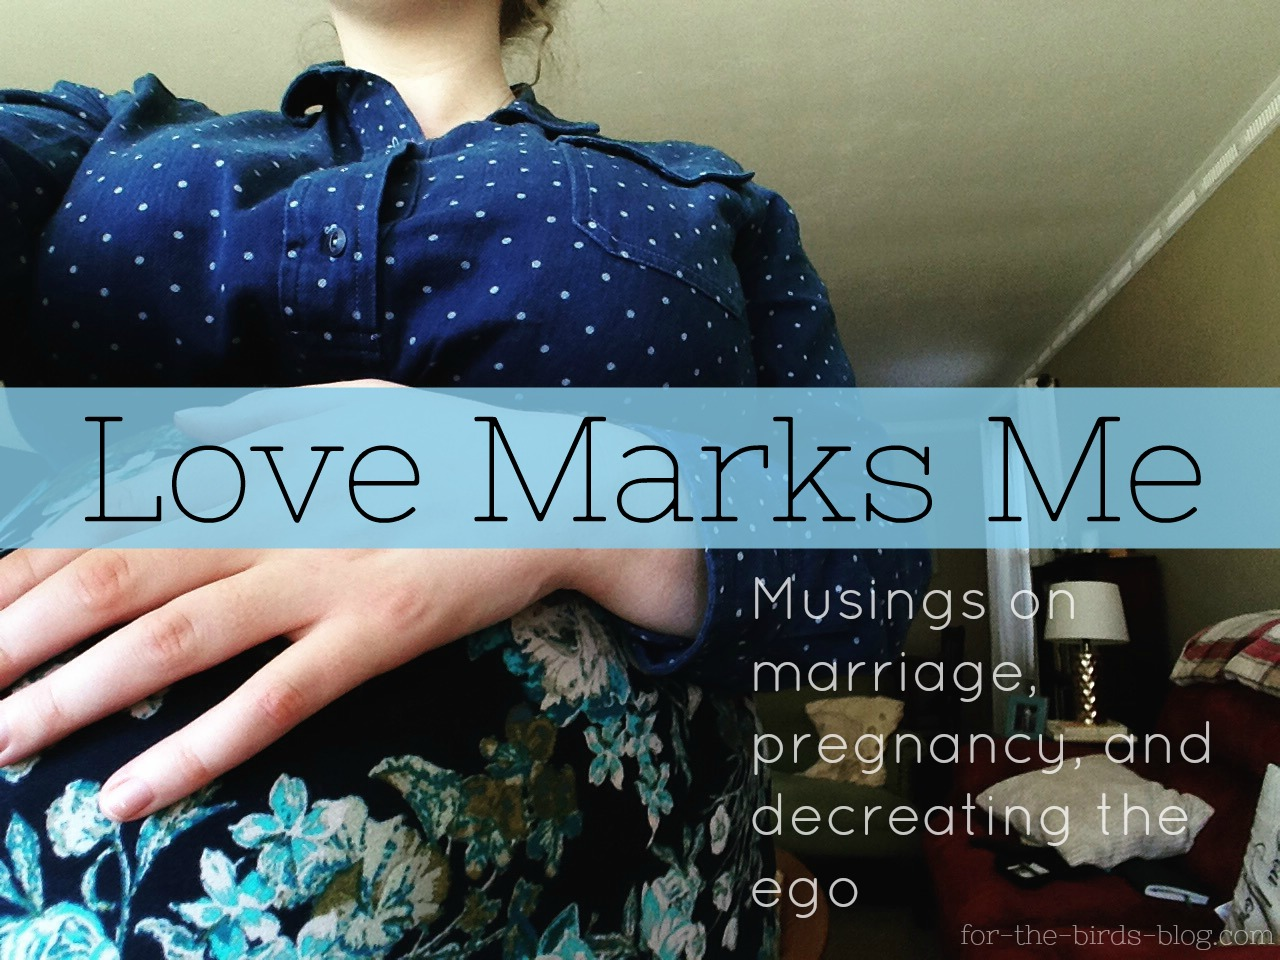 Love Marks Me - For the Birds - by Leanna Coyle-Carr